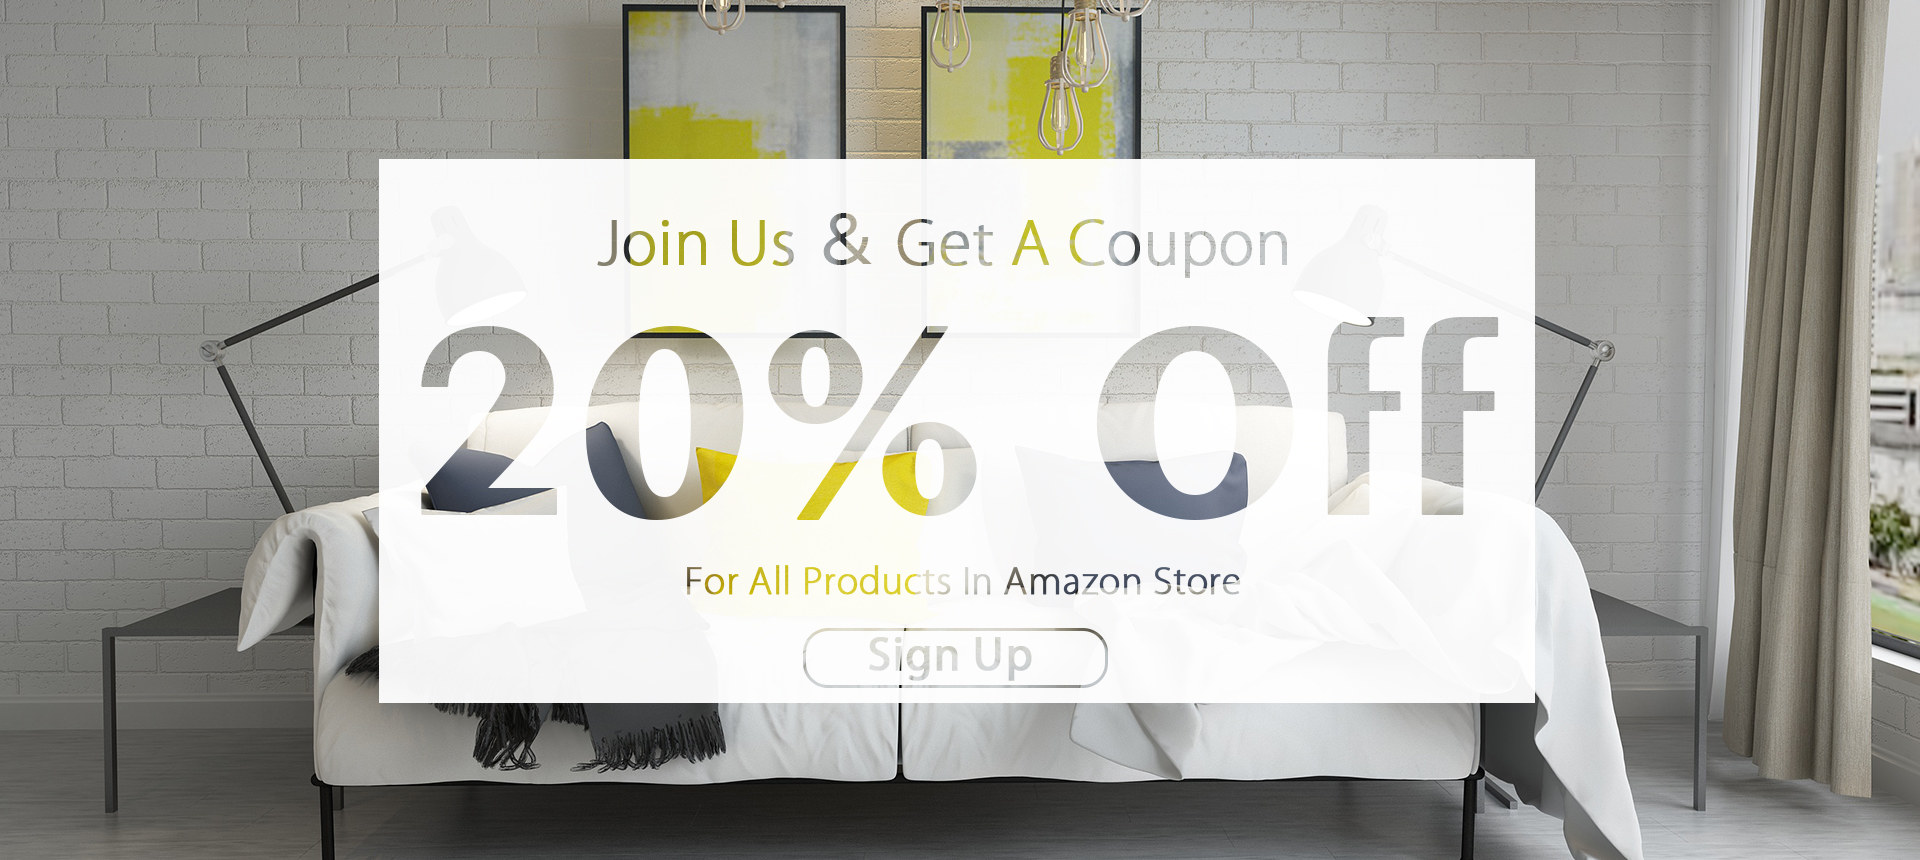 20% off banner